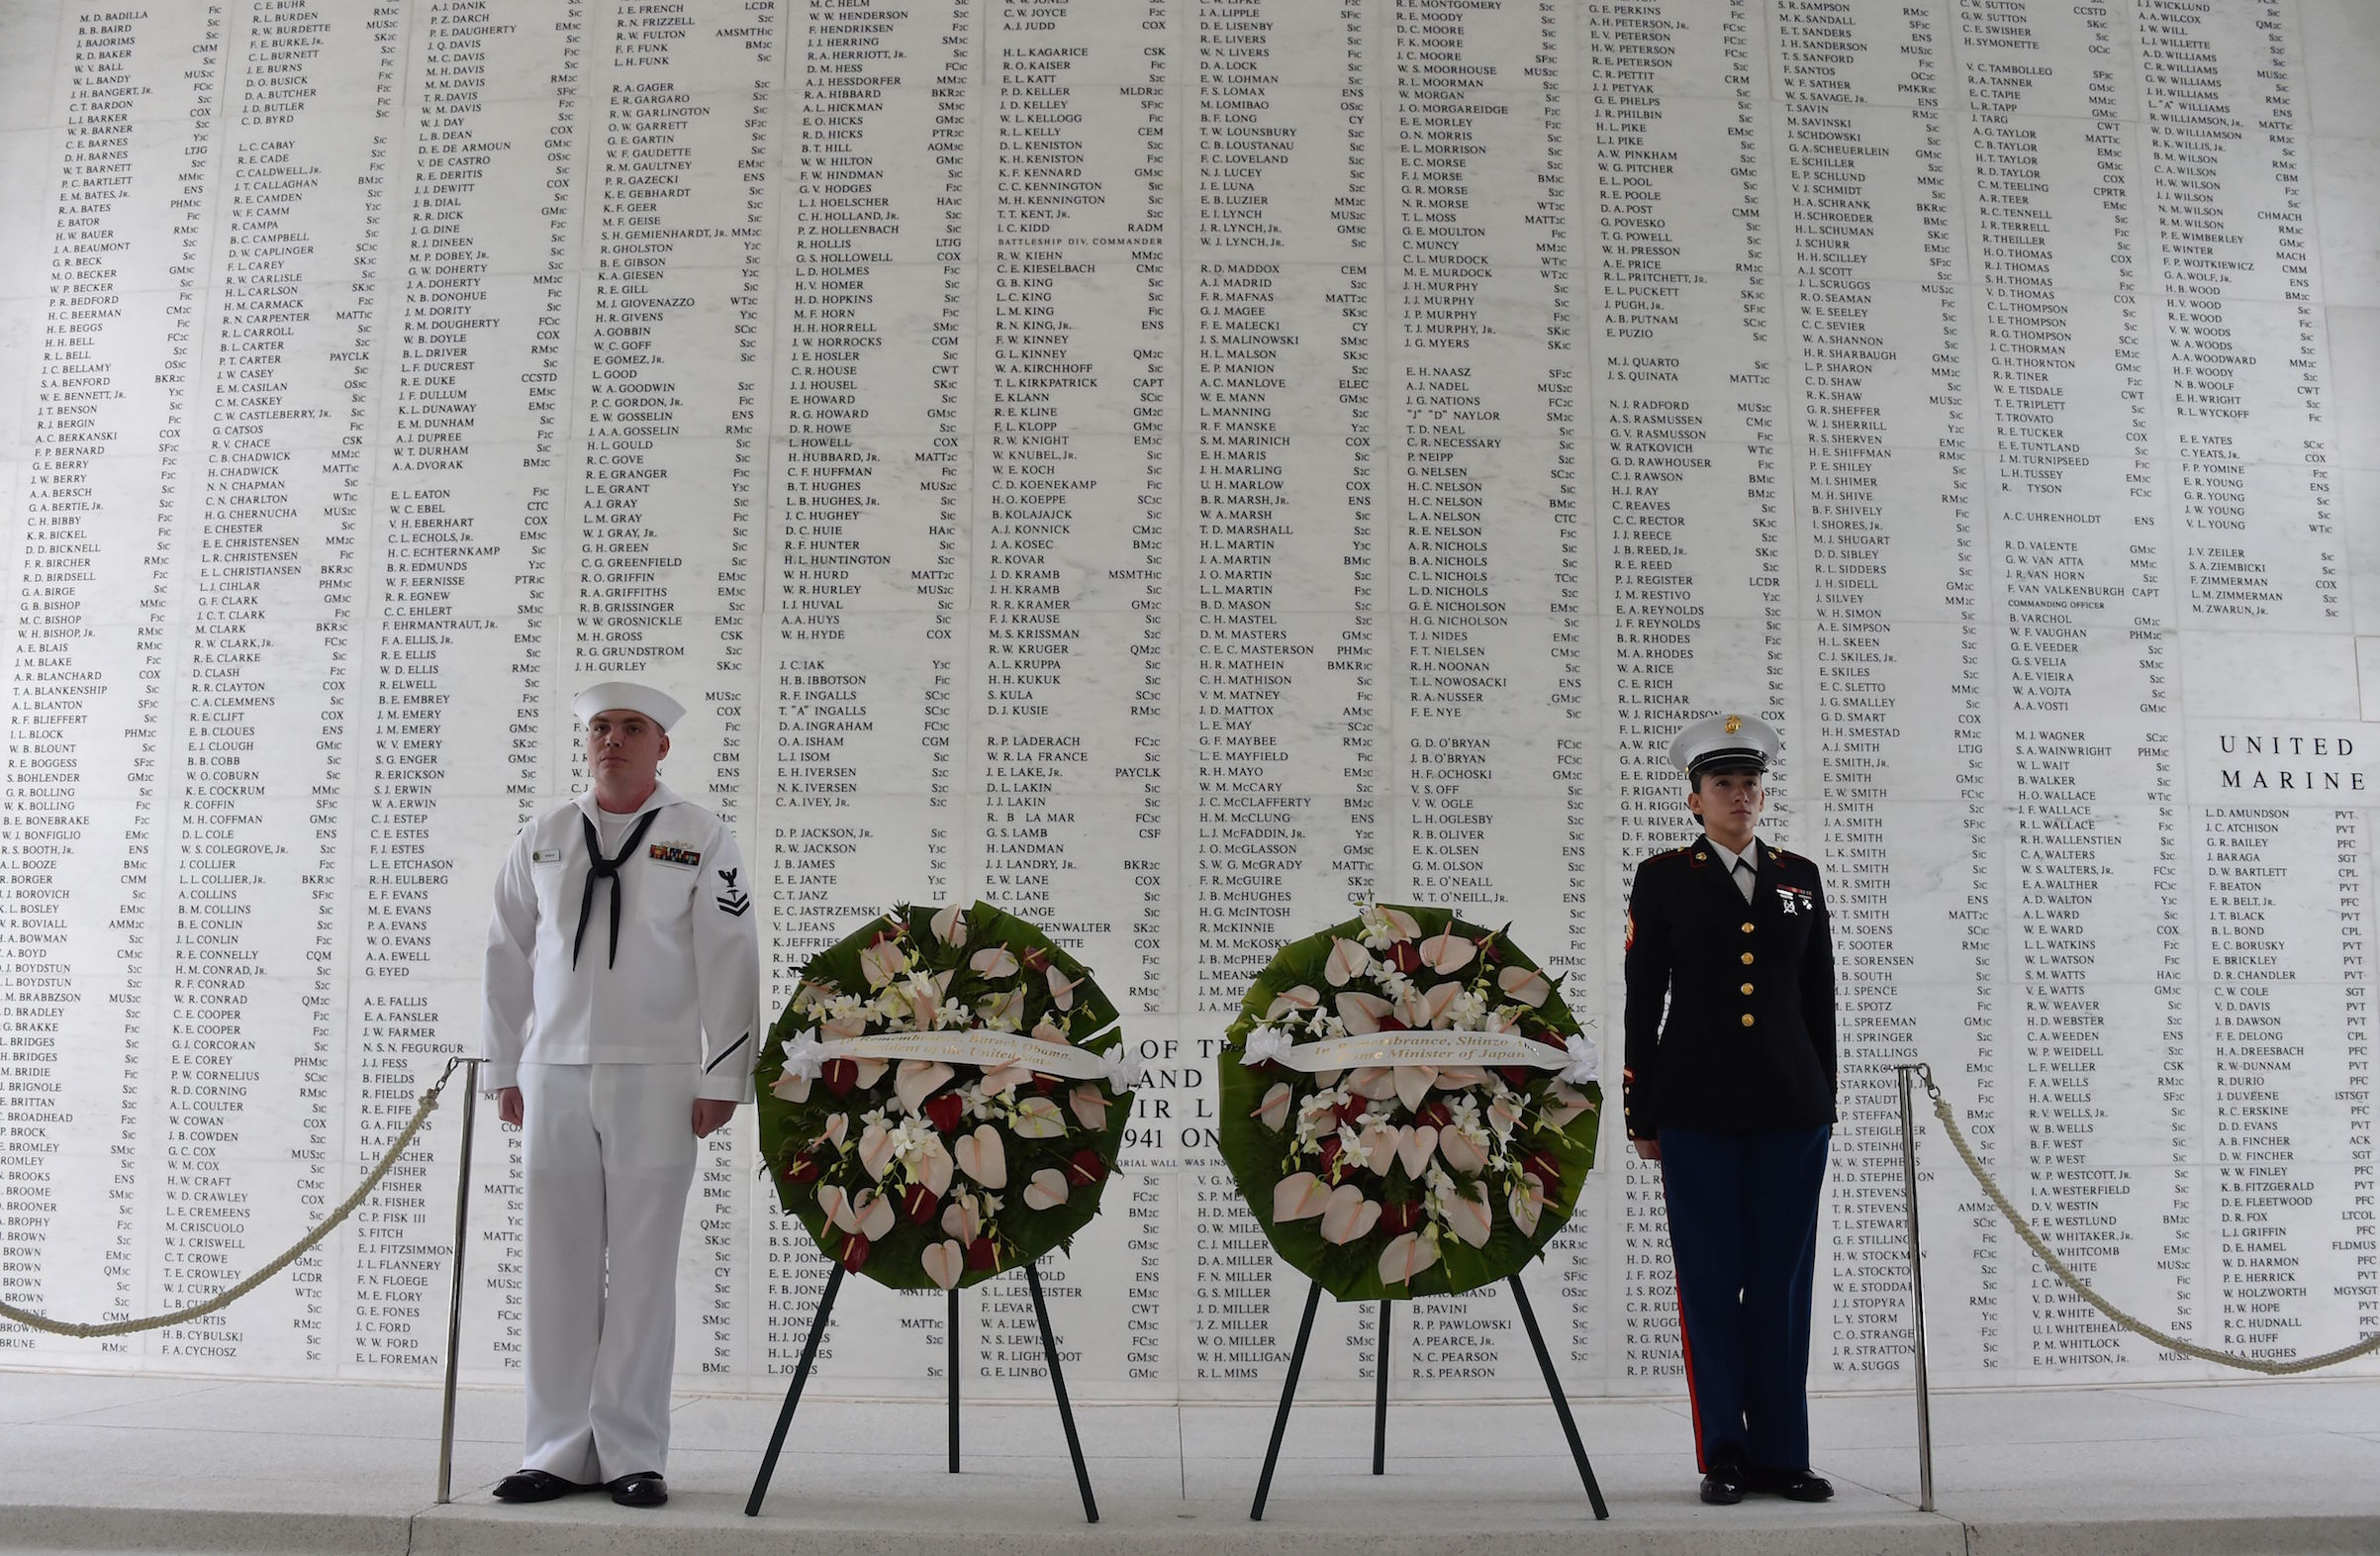 Two members of the U.S. military stand at attention after U.S. President Barack Obama and Japanese Prime Minister Shinzo Abe laid wreaths at the USS Arizona Memorial on Dec. 27, 2016 at Pearl Harbor in Honolulu.